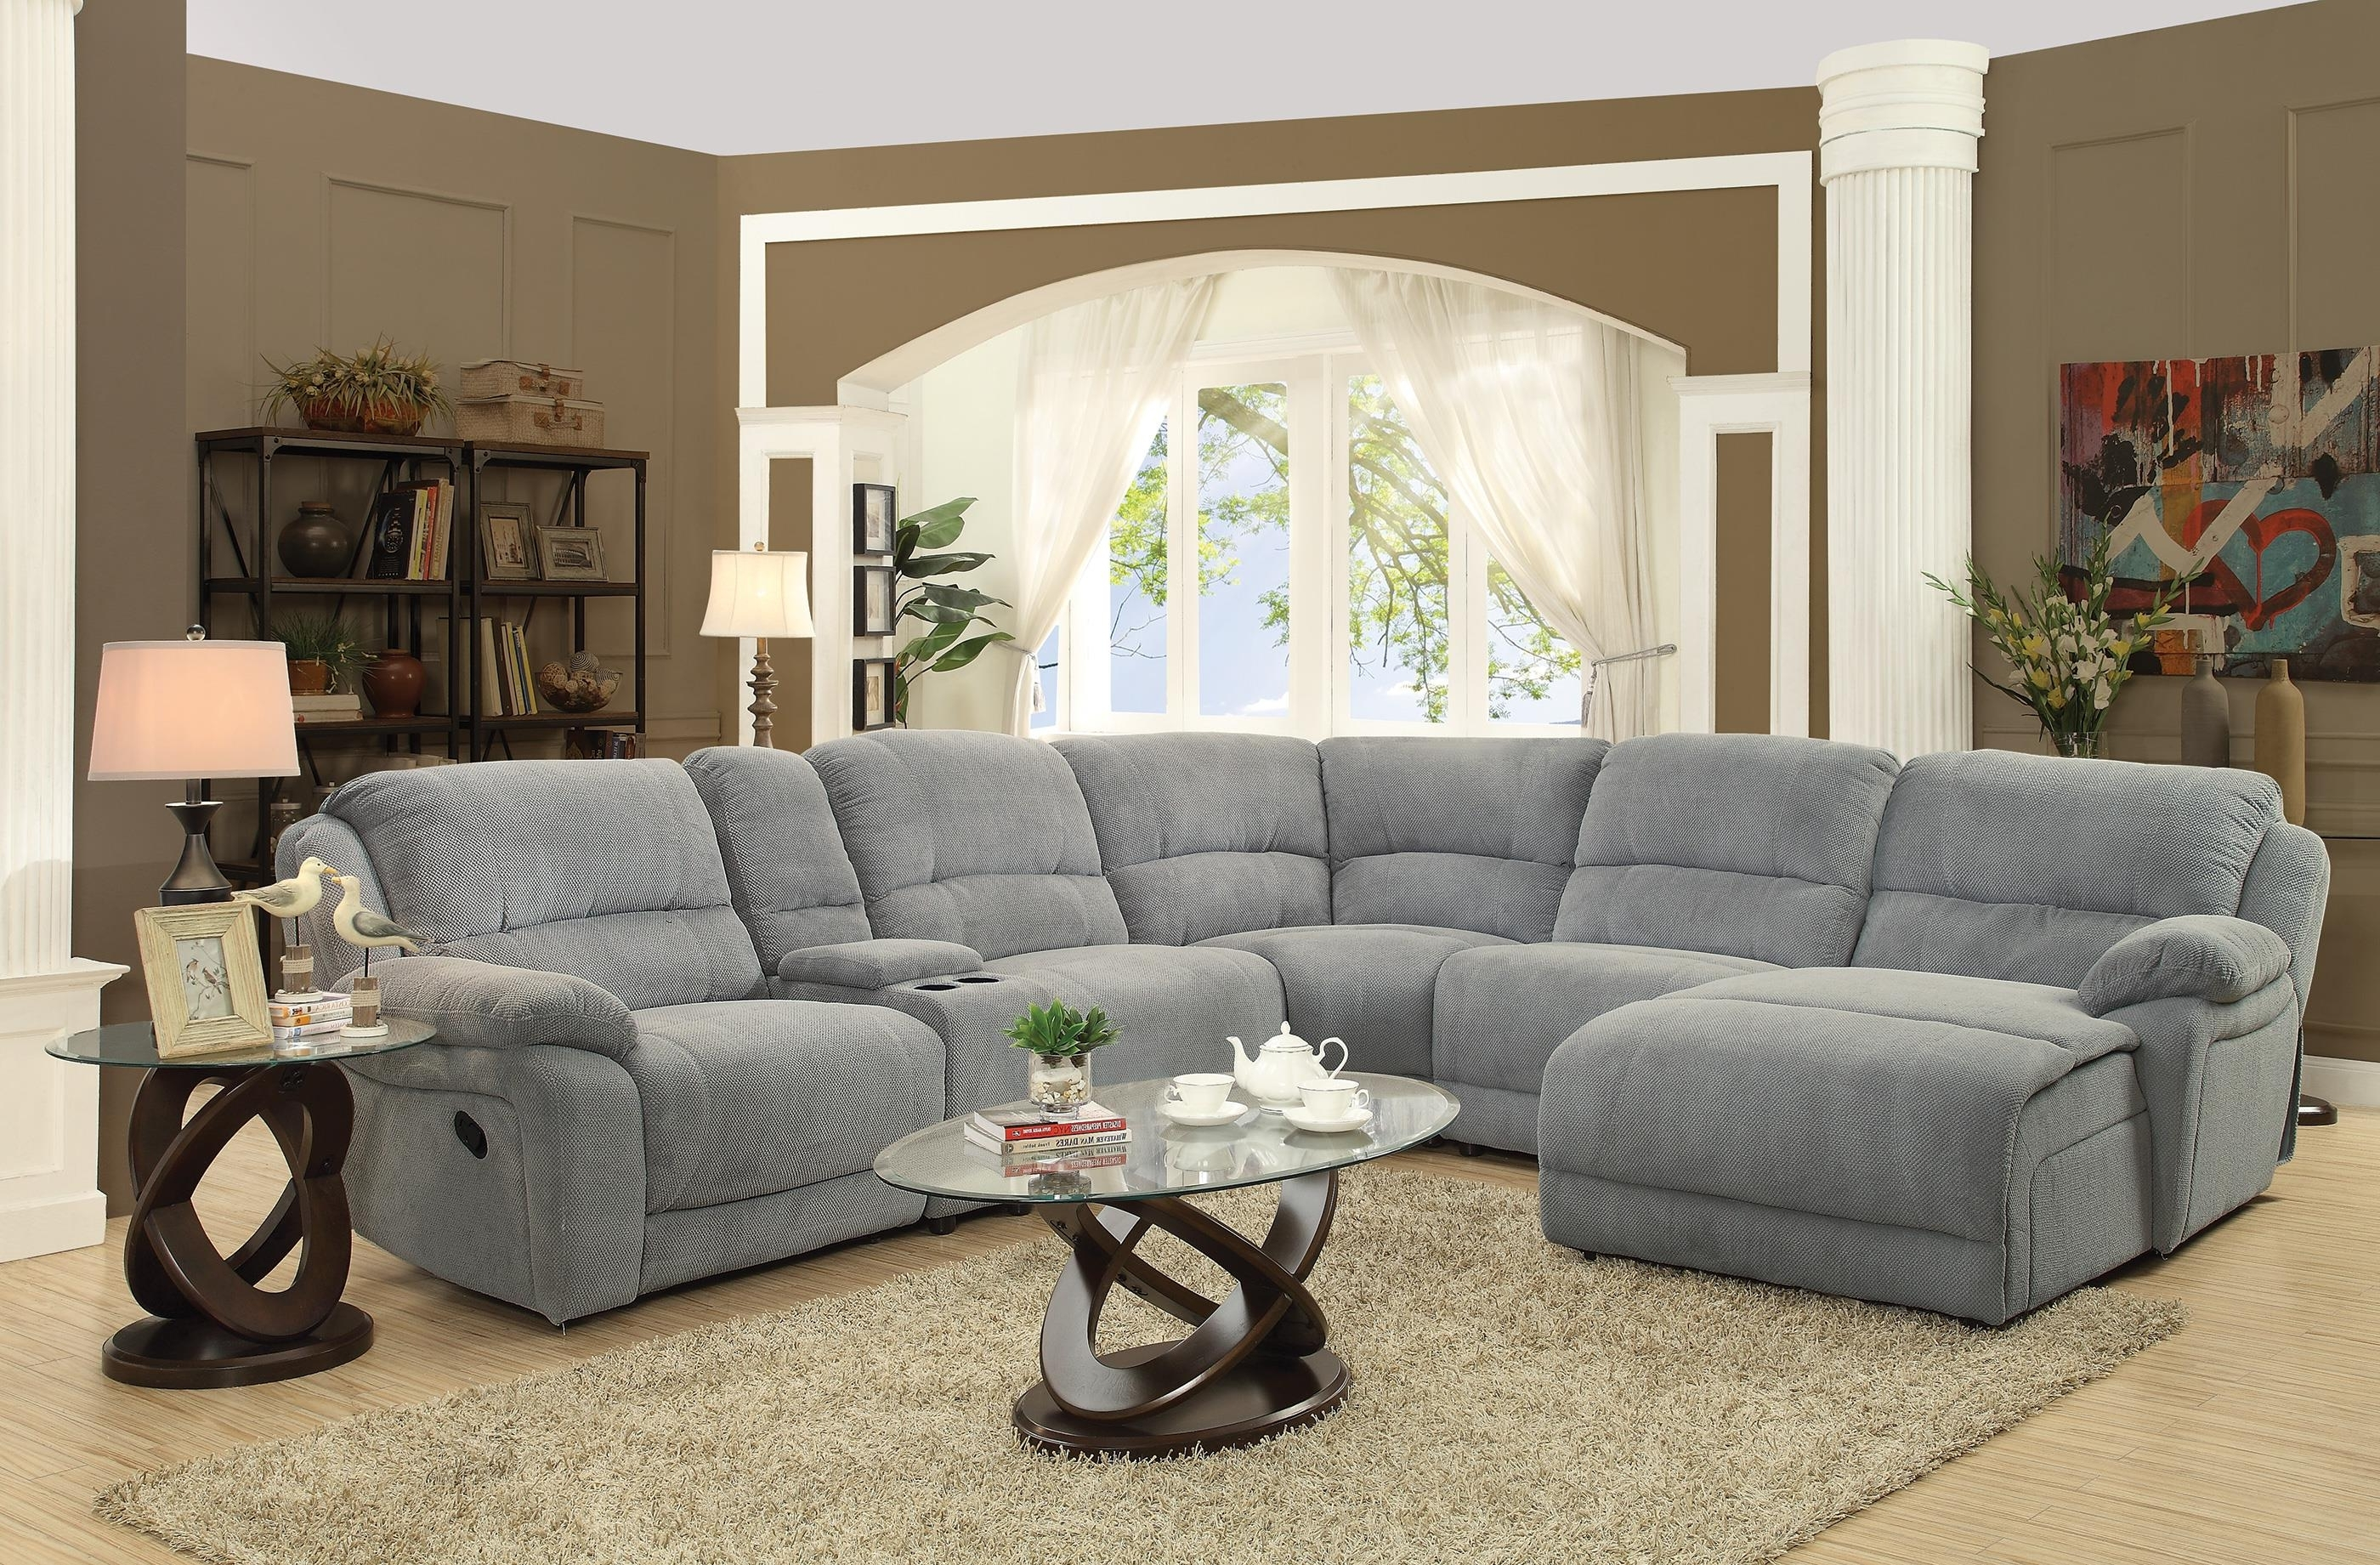 Gallery Furniture Sectional Sofas In Most Up To Date Recliners Chairs & Sofa : Fabric Reclining Sectional Sofa With (View 4 of 15)